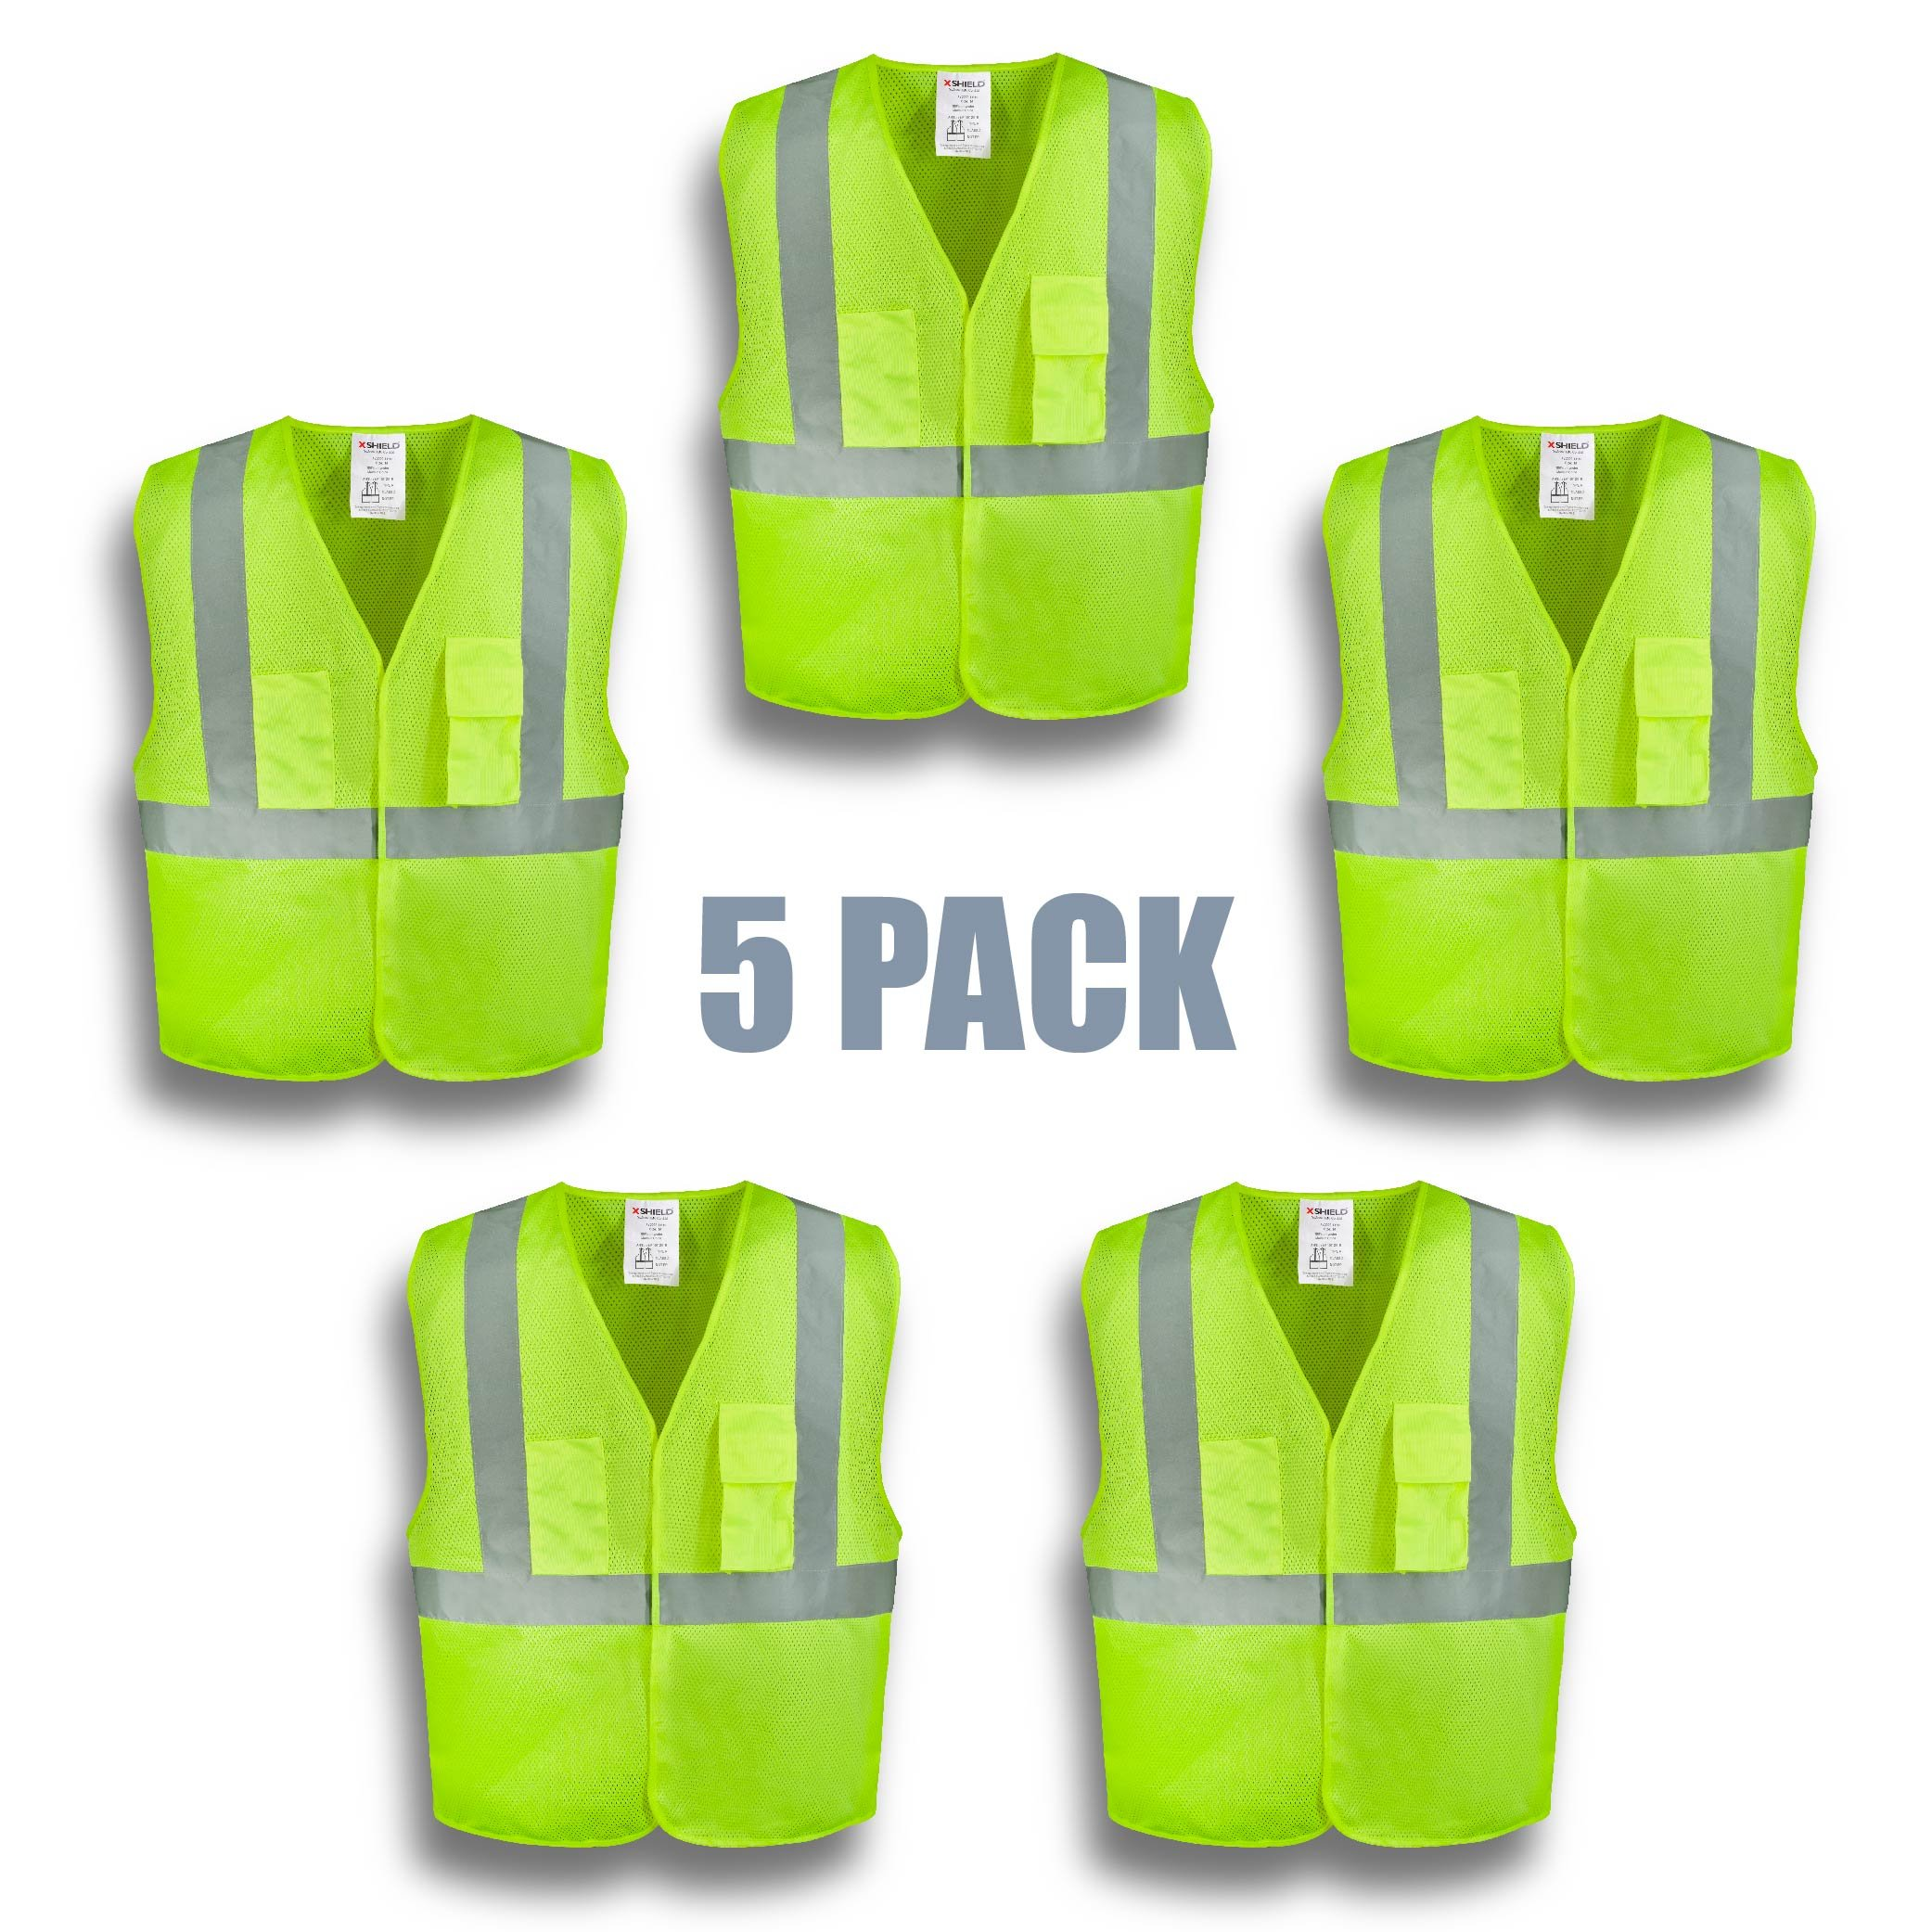 XSHIELD XS0003,High Visibility Safety Vest with Silver Stripe,ANSI/ISEA 107-2015 Type R Class2 Not FR,Pack of 5 (L, Yellow)